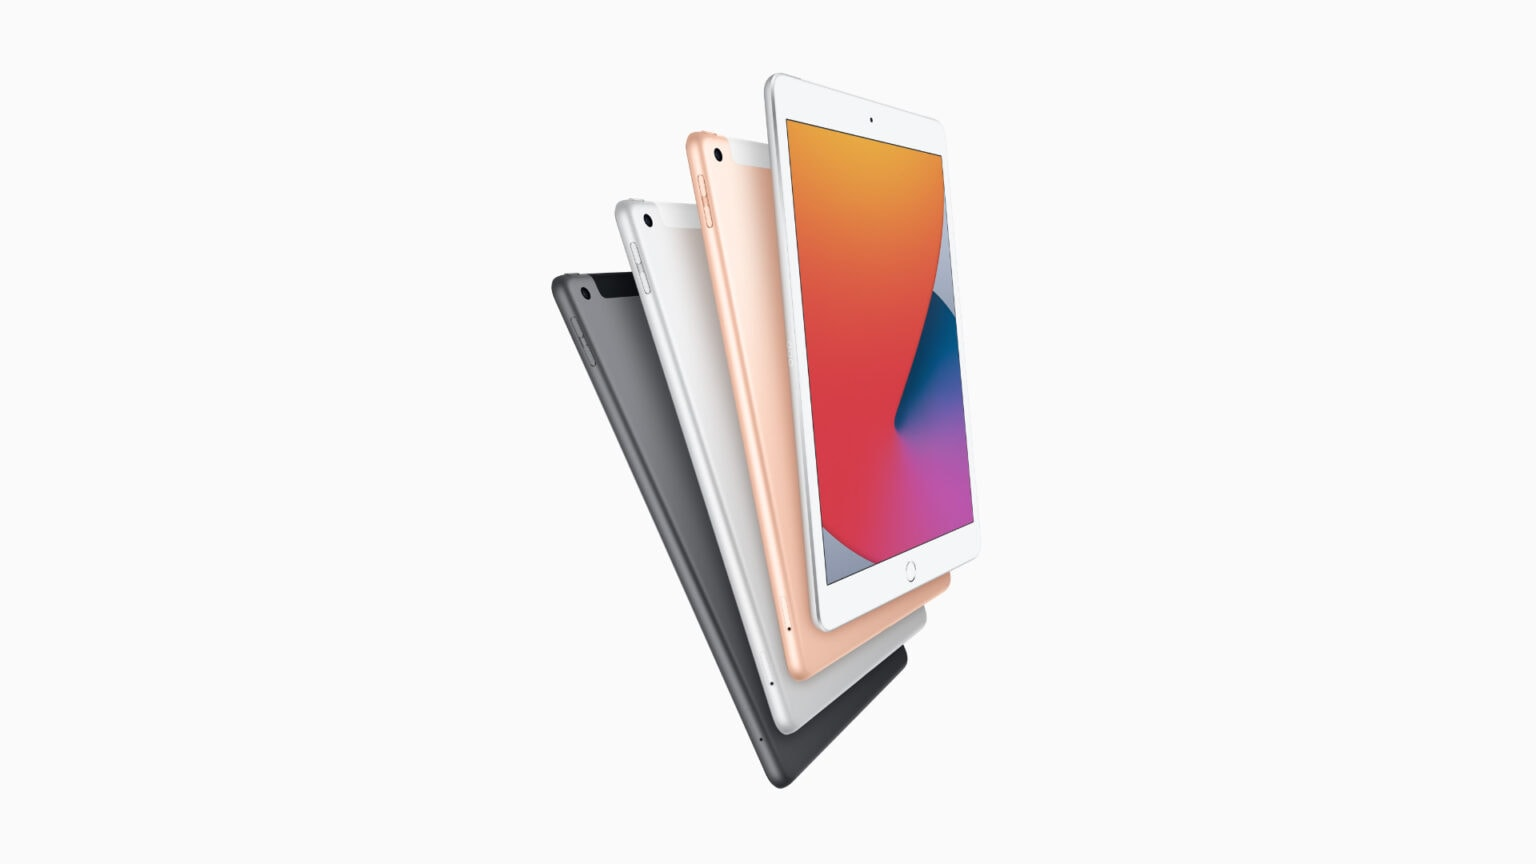 New 2020 iPad colors